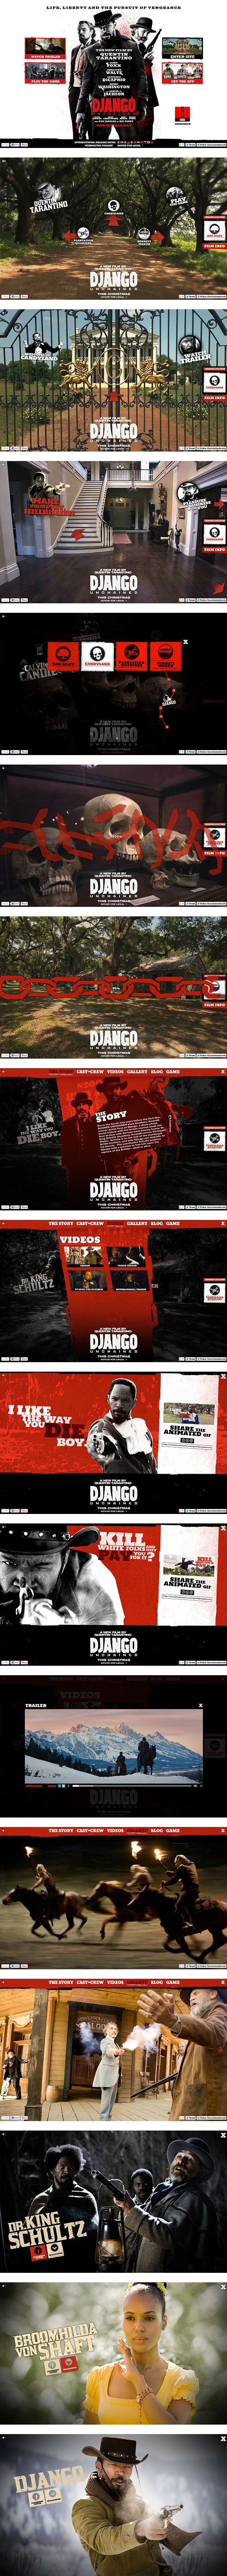 Django Unchained by Ronald Wisse, via Behance *** Theatrical website for the new Quentin Tarantino movie Django Unchained.